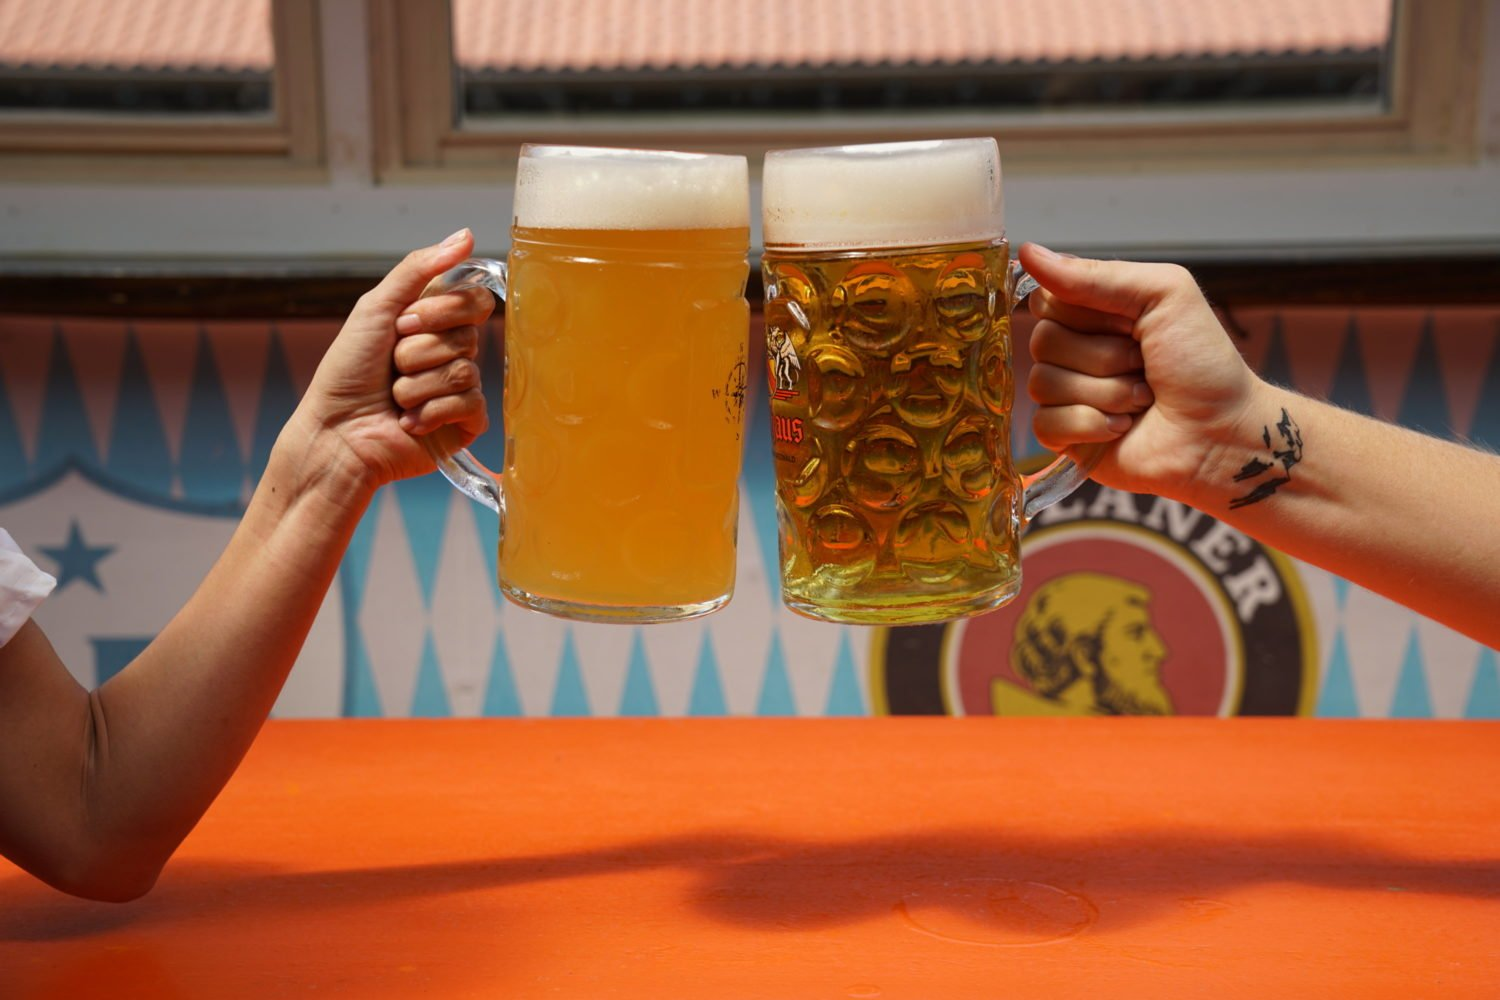 Beer gardens and beer halls like Sauf Haus in Dupont Circle are hosting Oktoberfest celebrations. Photograph courtesy of Sauf Haus.